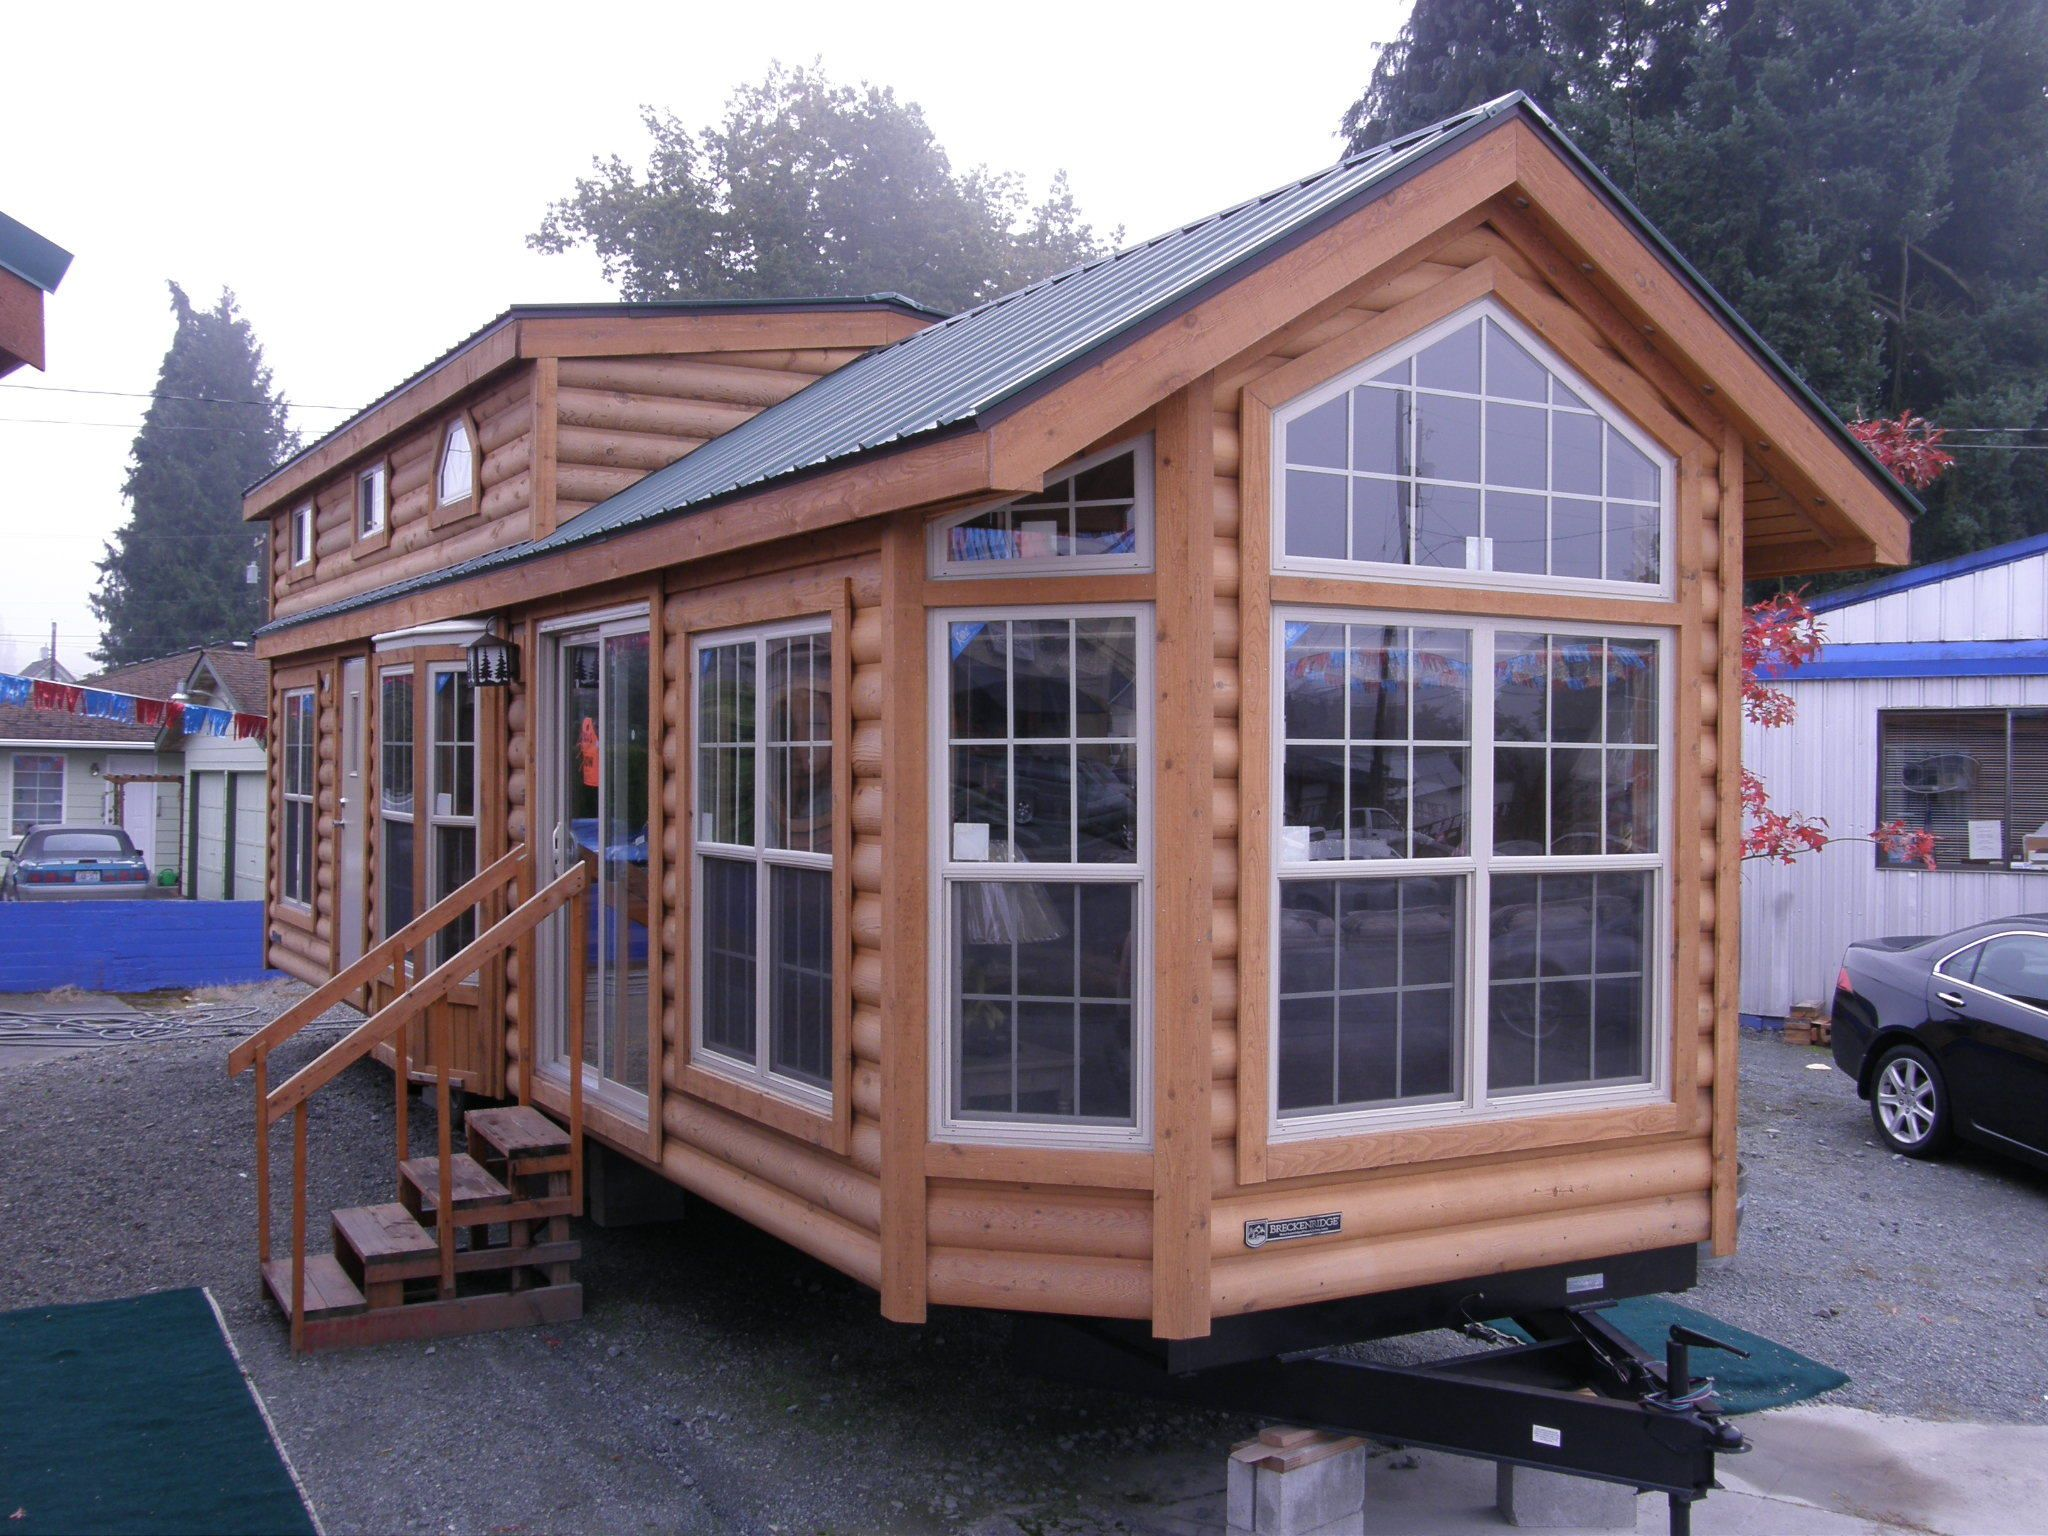 House on wheels craigslist visit open big tiny house on for Small house design on wheels